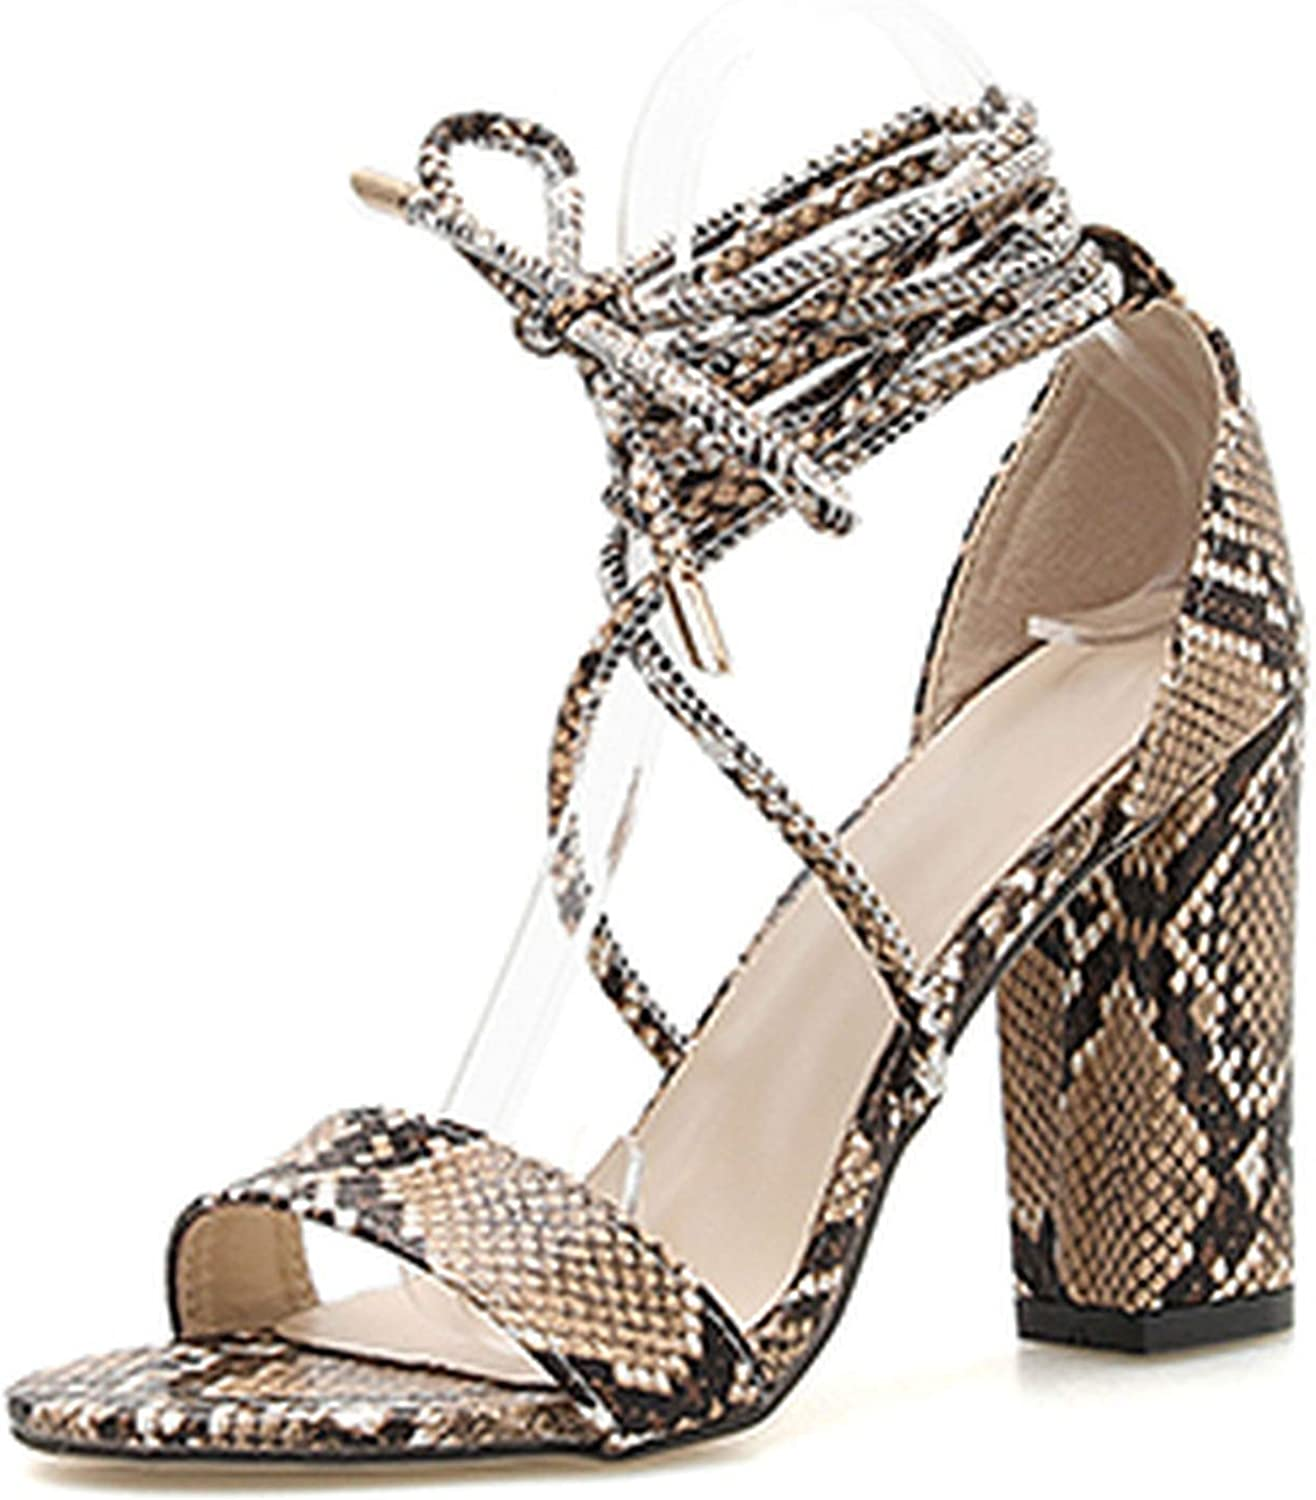 HuangKang Serpentine Summer Lace Up High Heels Sandals Peep Toe Women shoes Lace Up Square Heel Cover Heel Sandals shoes